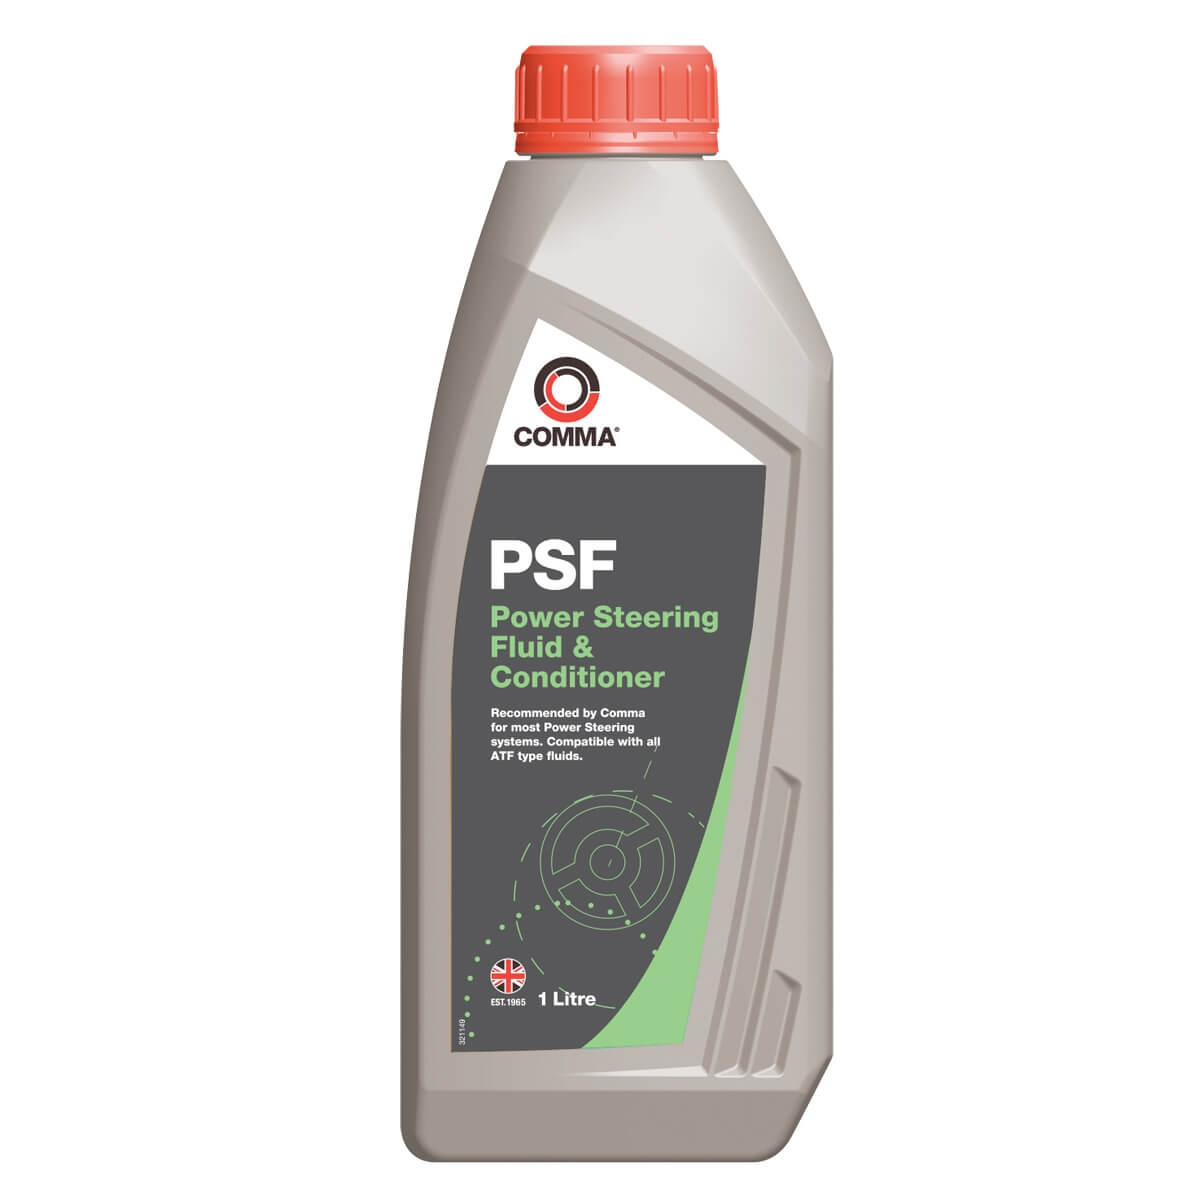 FIAT DUNA Power Steering Oil